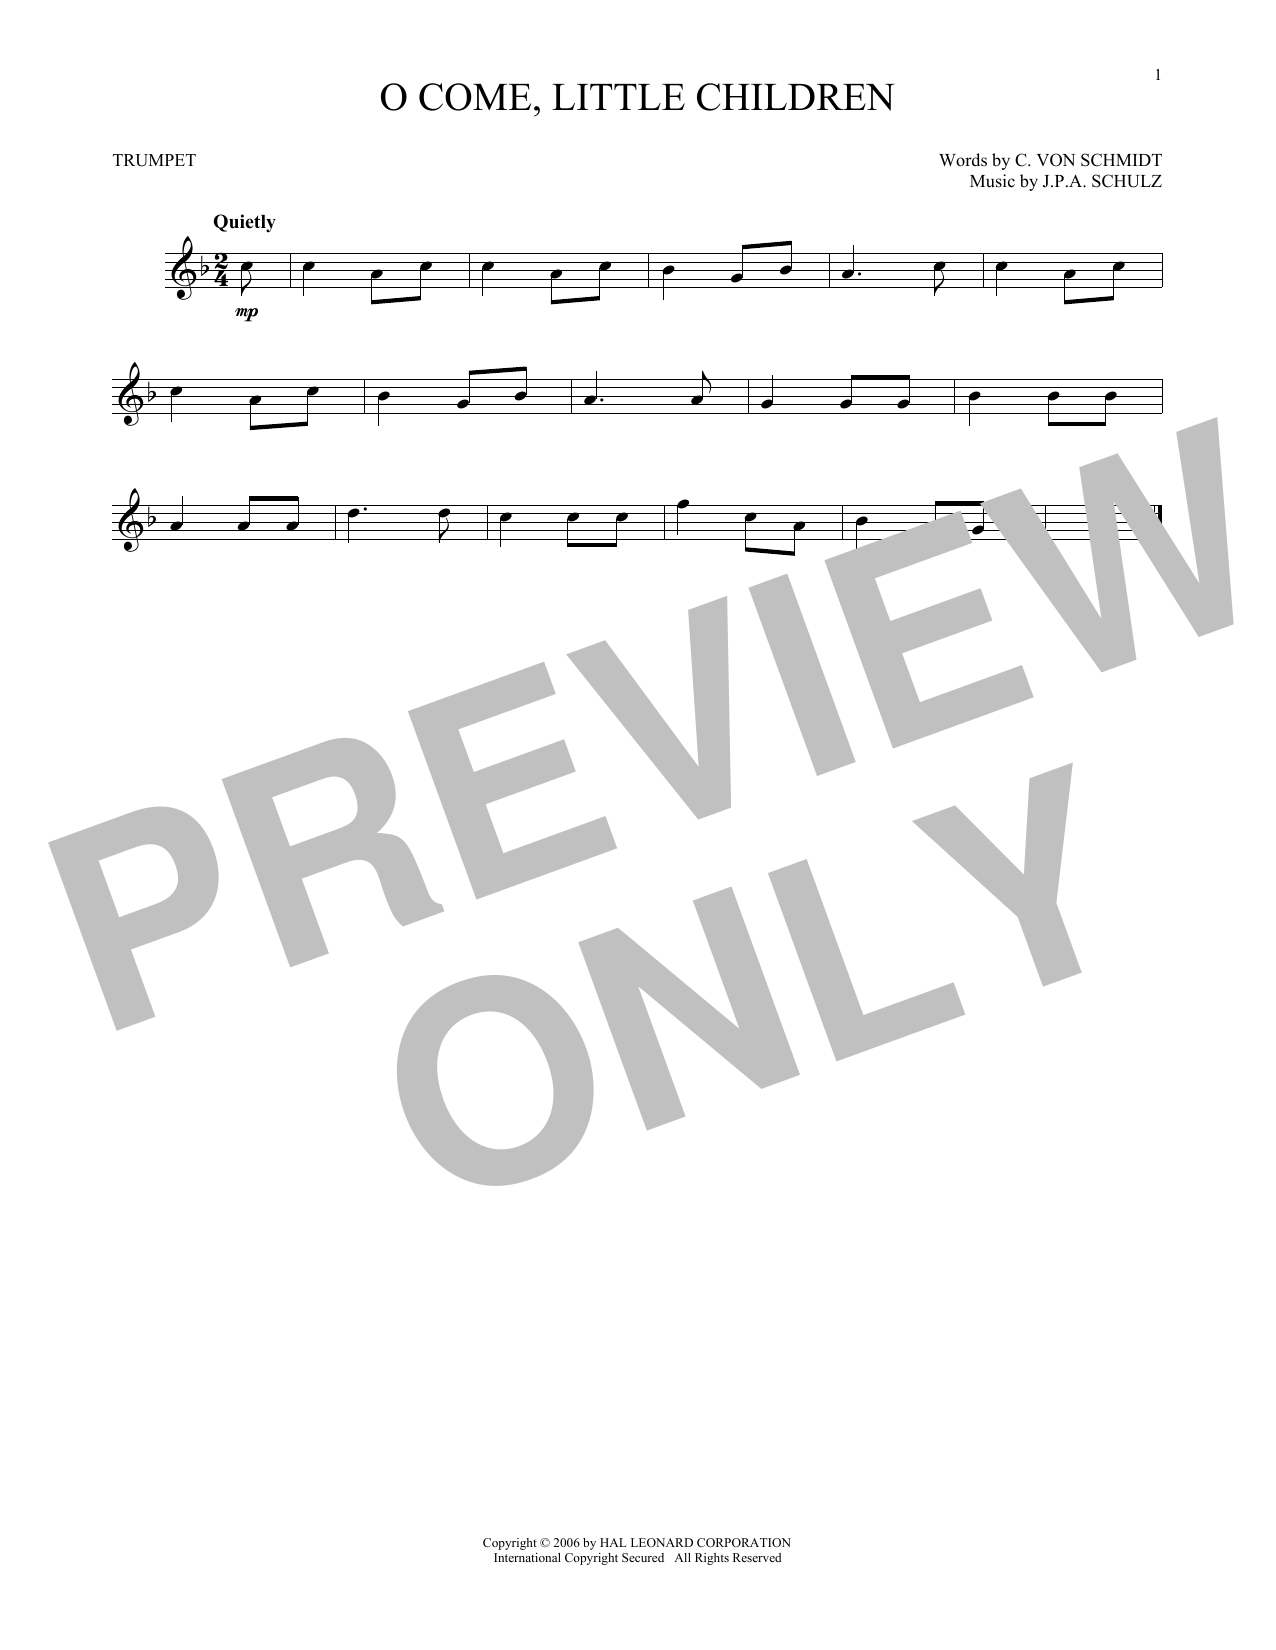 J.P.A. Schulz O Come, Little Children sheet music notes and chords. Download Printable PDF.